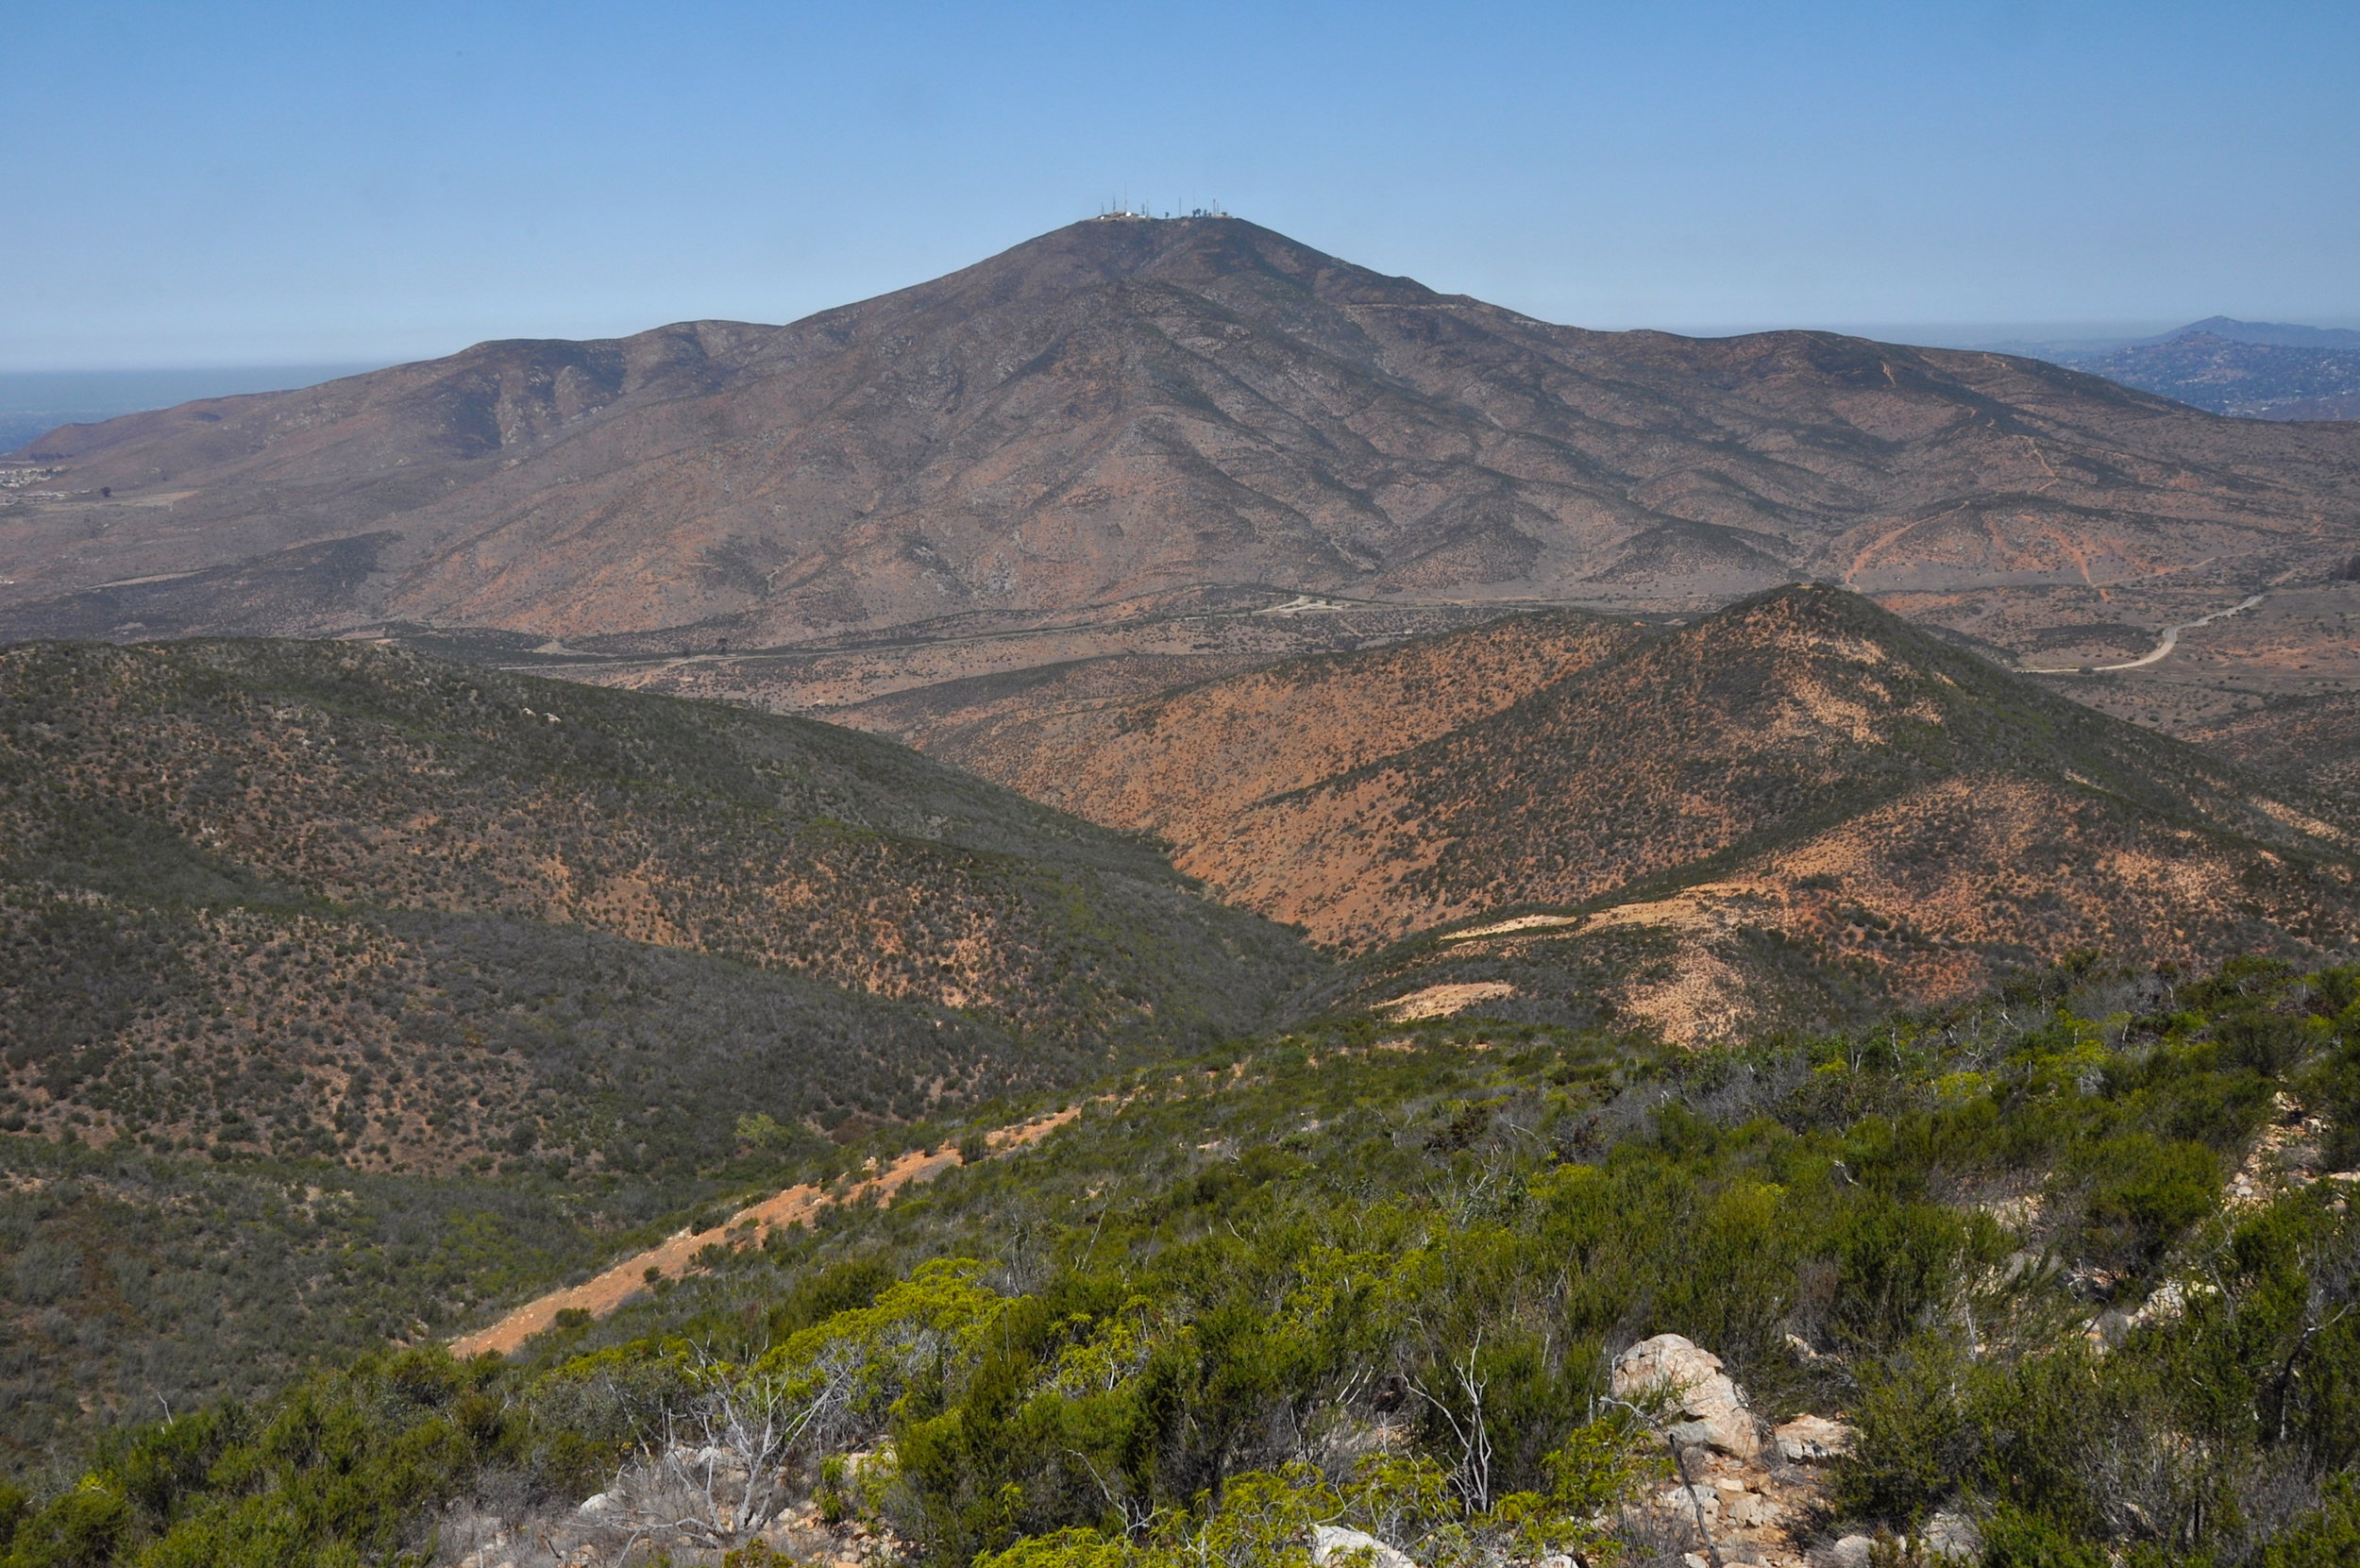 Looking across Proctor Valley at San Miguel Mountain